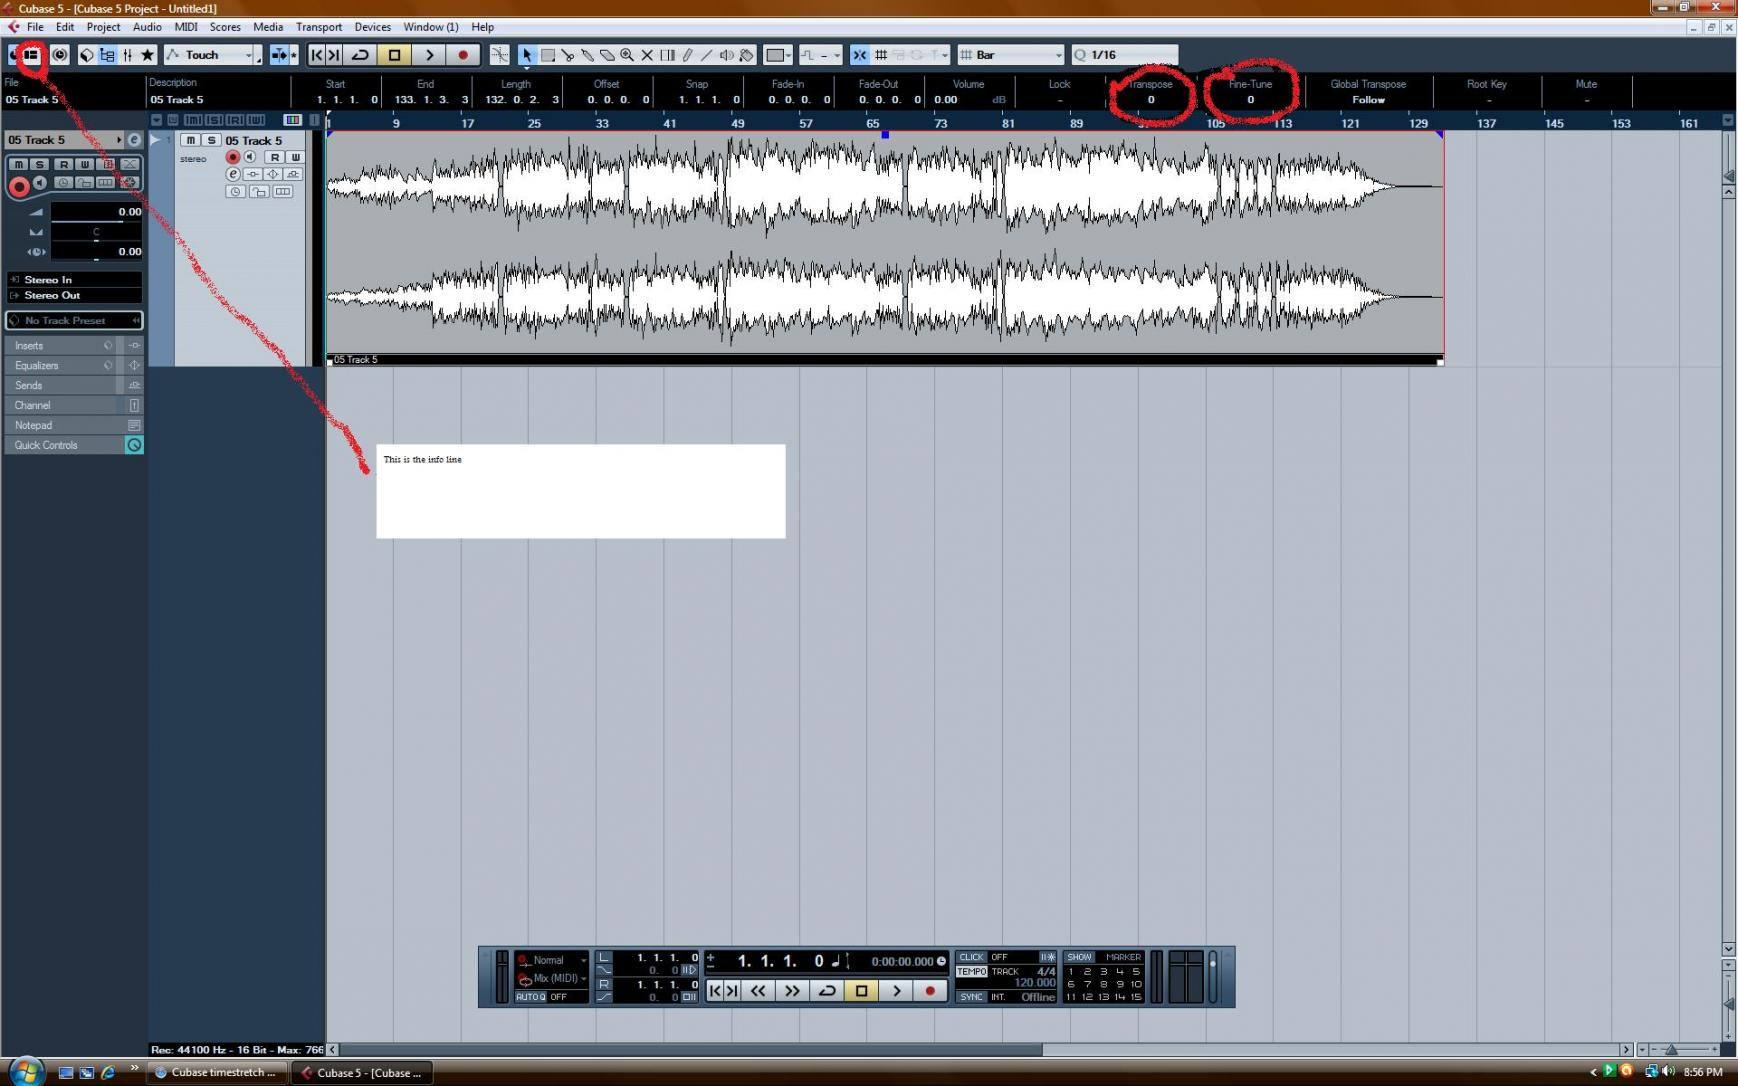 183236d1279415033-cubase-timestretch-without-preserving-pitch-i-am-literally-pulling-my-hair-out-pic.jpg